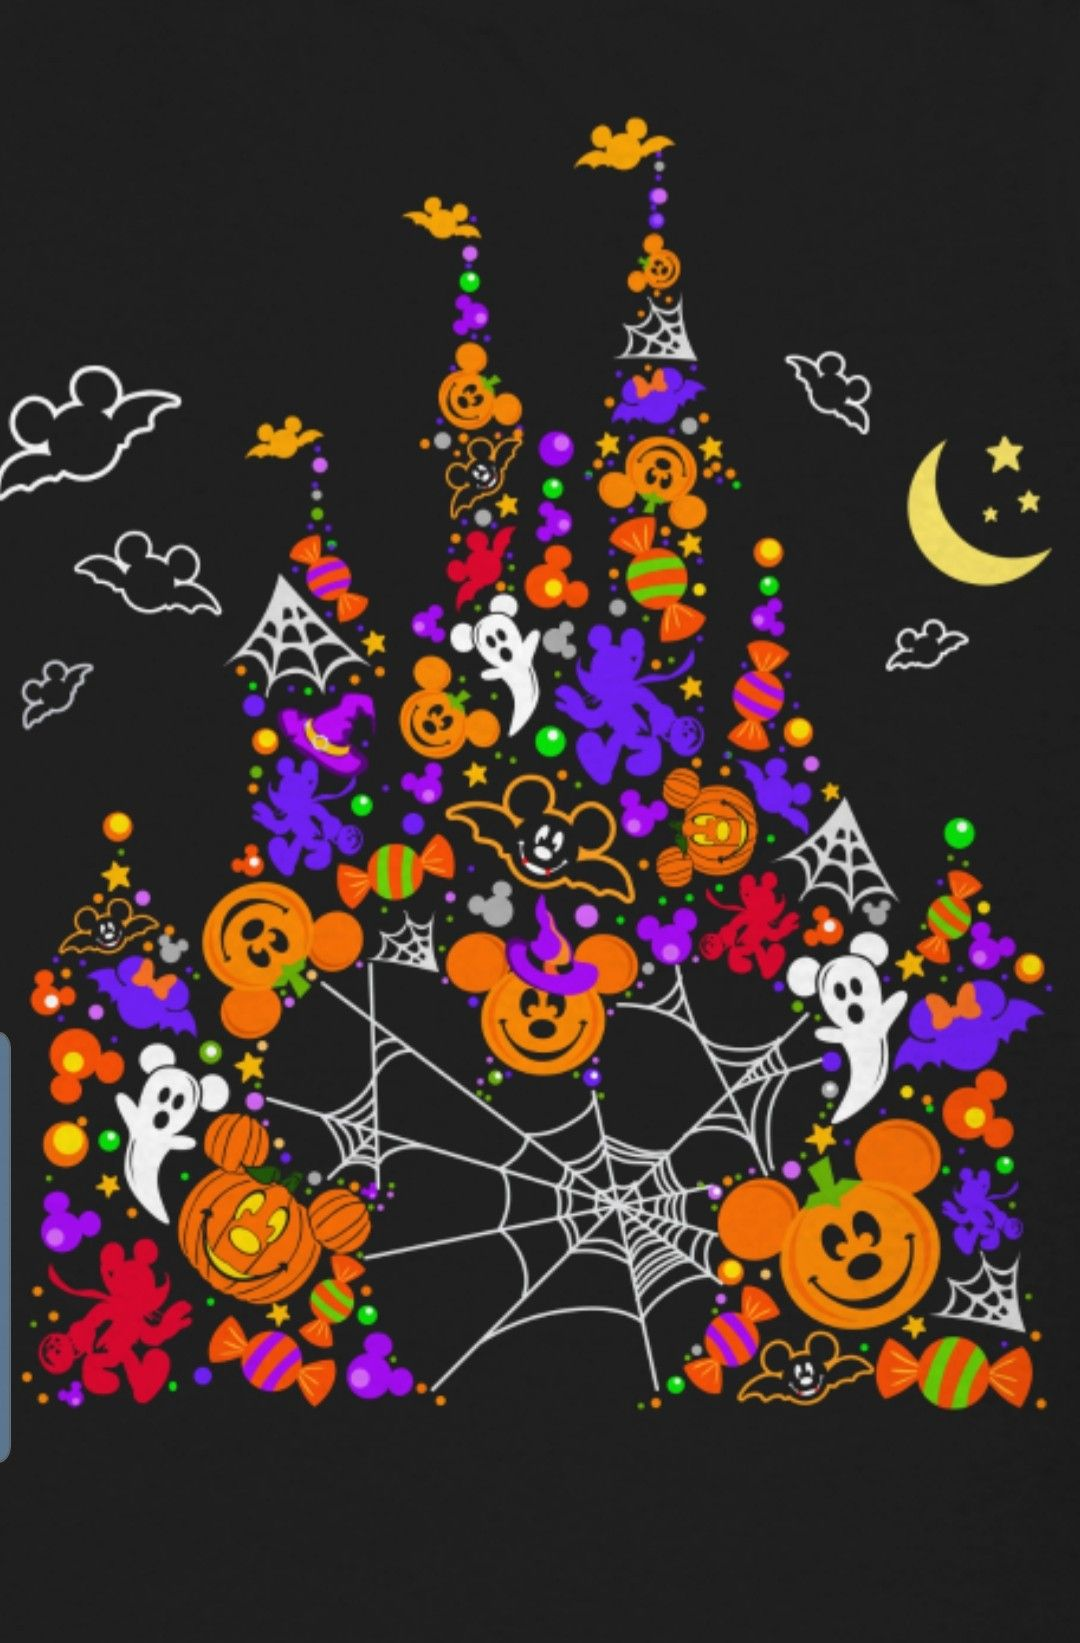 Pin By Laura Mcculloch On Disney Halloween Wallpaper Halloween Wallpaper Iphone Mickey Halloween